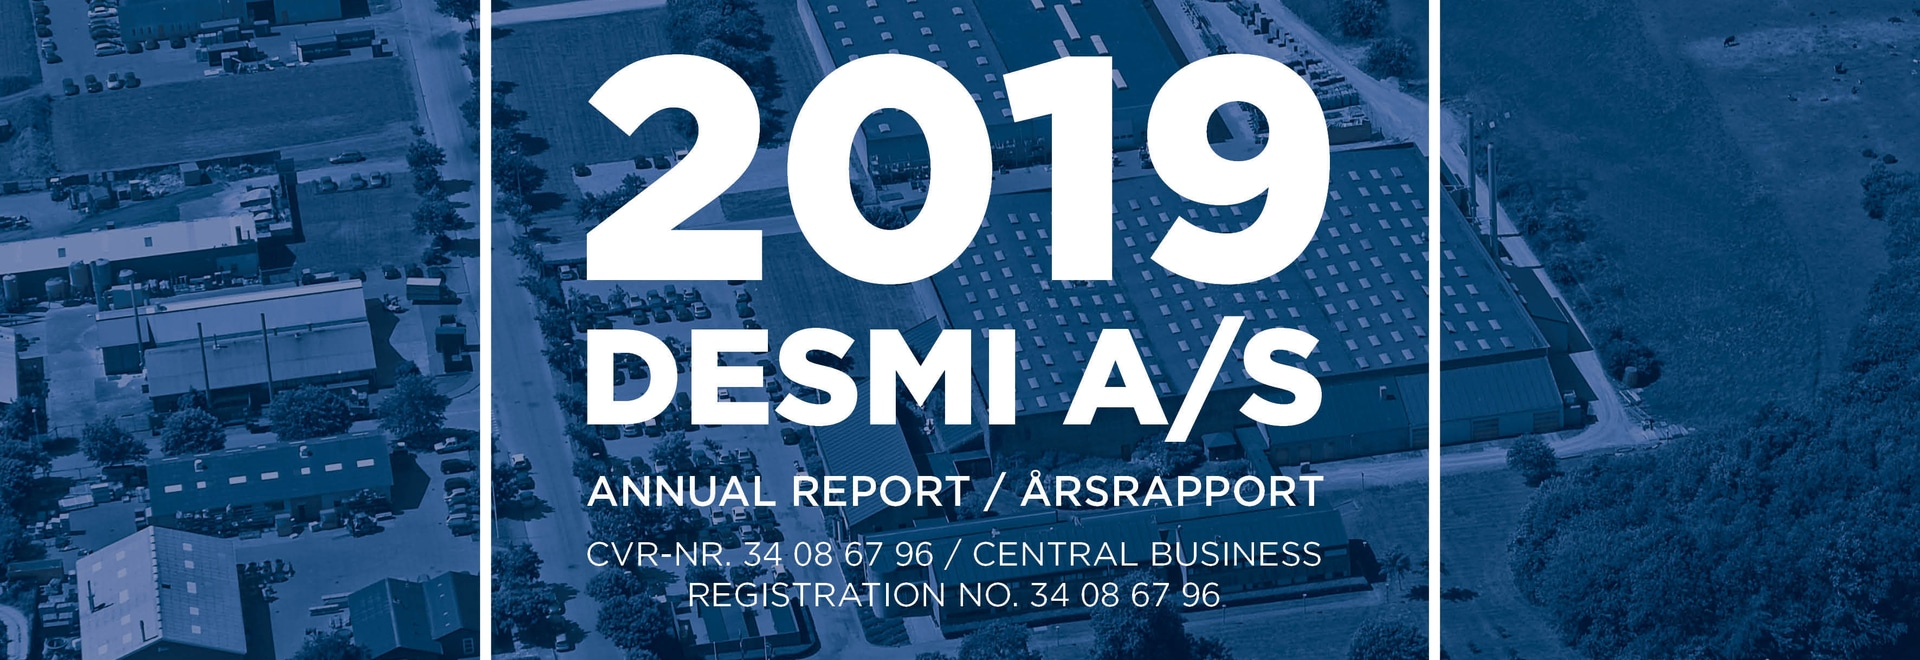 Annual Report 2019 DESMI A/S - In DESMI the result of 2019 is considered very satisfactory